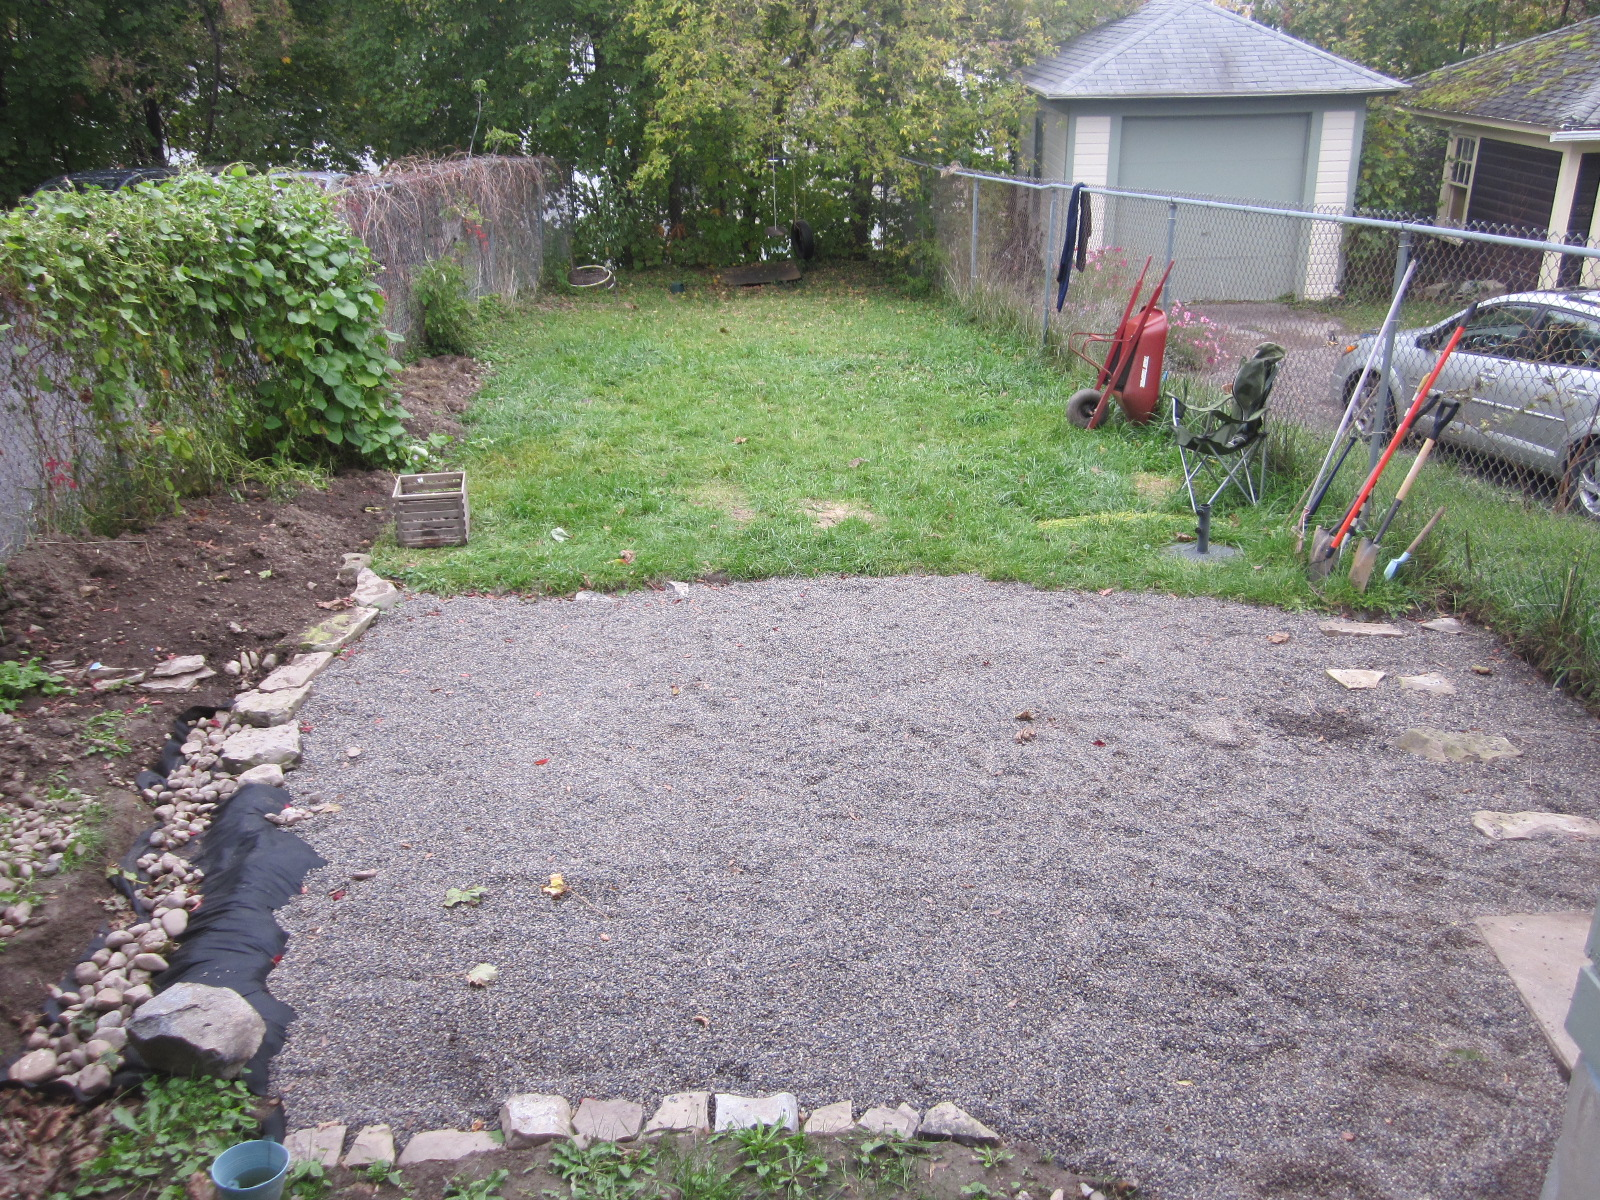 Pea Gravel Backyard For Dogs :  100 year old house renovation Backyard Stage 1 Pea gravel patio